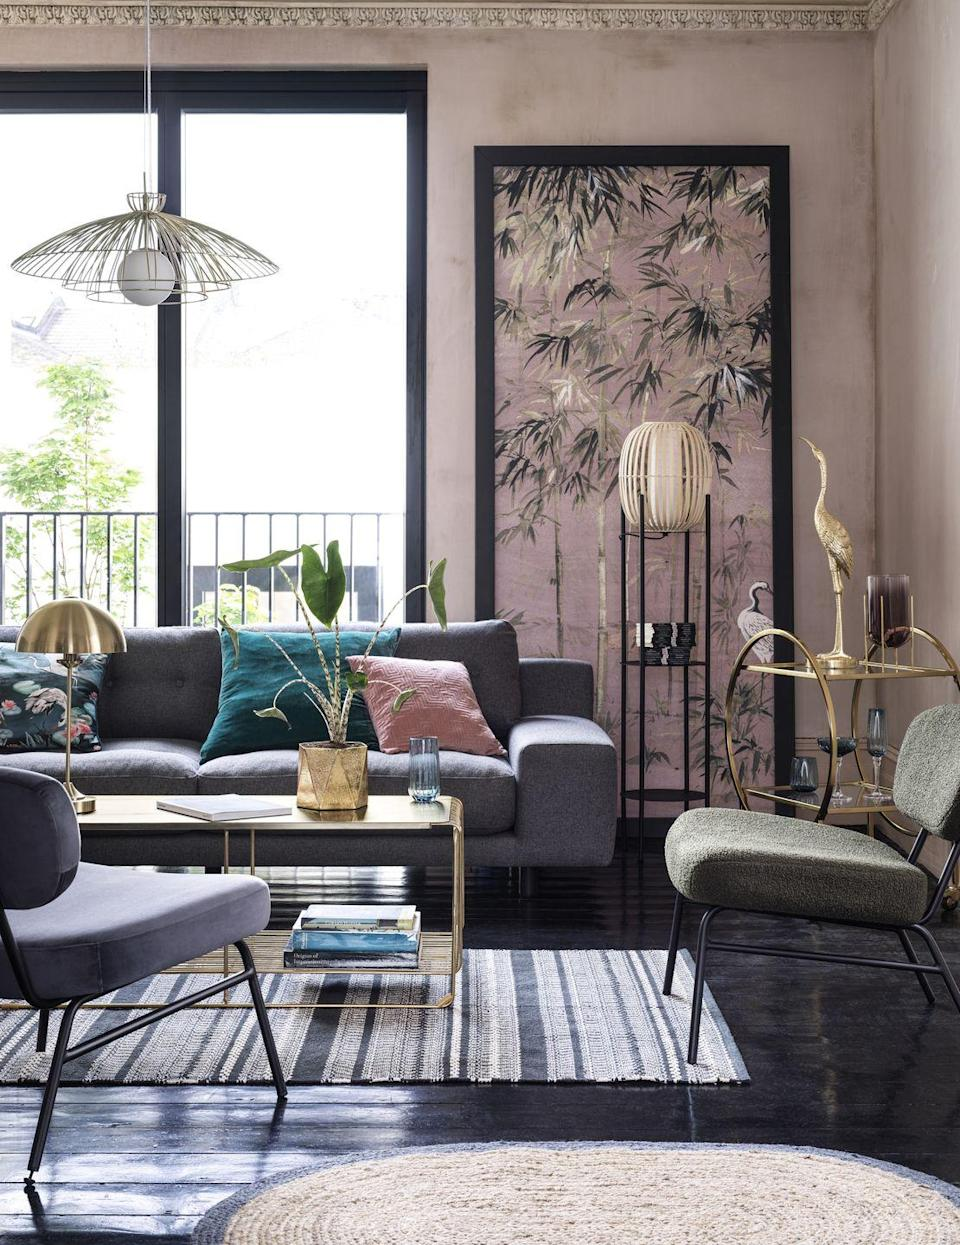 """<p>For the season ahead, Habitat is tapping into Japanese influence, such as accents of bamboo, rattan and crane prints. Dramatic dashes of teal sit alongside a palette of pink, while accessories mirror the understated luxury of boutique <a href=""""https://www.housebeautiful.com/uk/decorate/g36405117/coffee-table-books/"""" rel=""""nofollow noopener"""" target=""""_blank"""" data-ylk=""""slk:interior design"""" class=""""link rapid-noclick-resp"""">interior design</a>. <br></p>"""